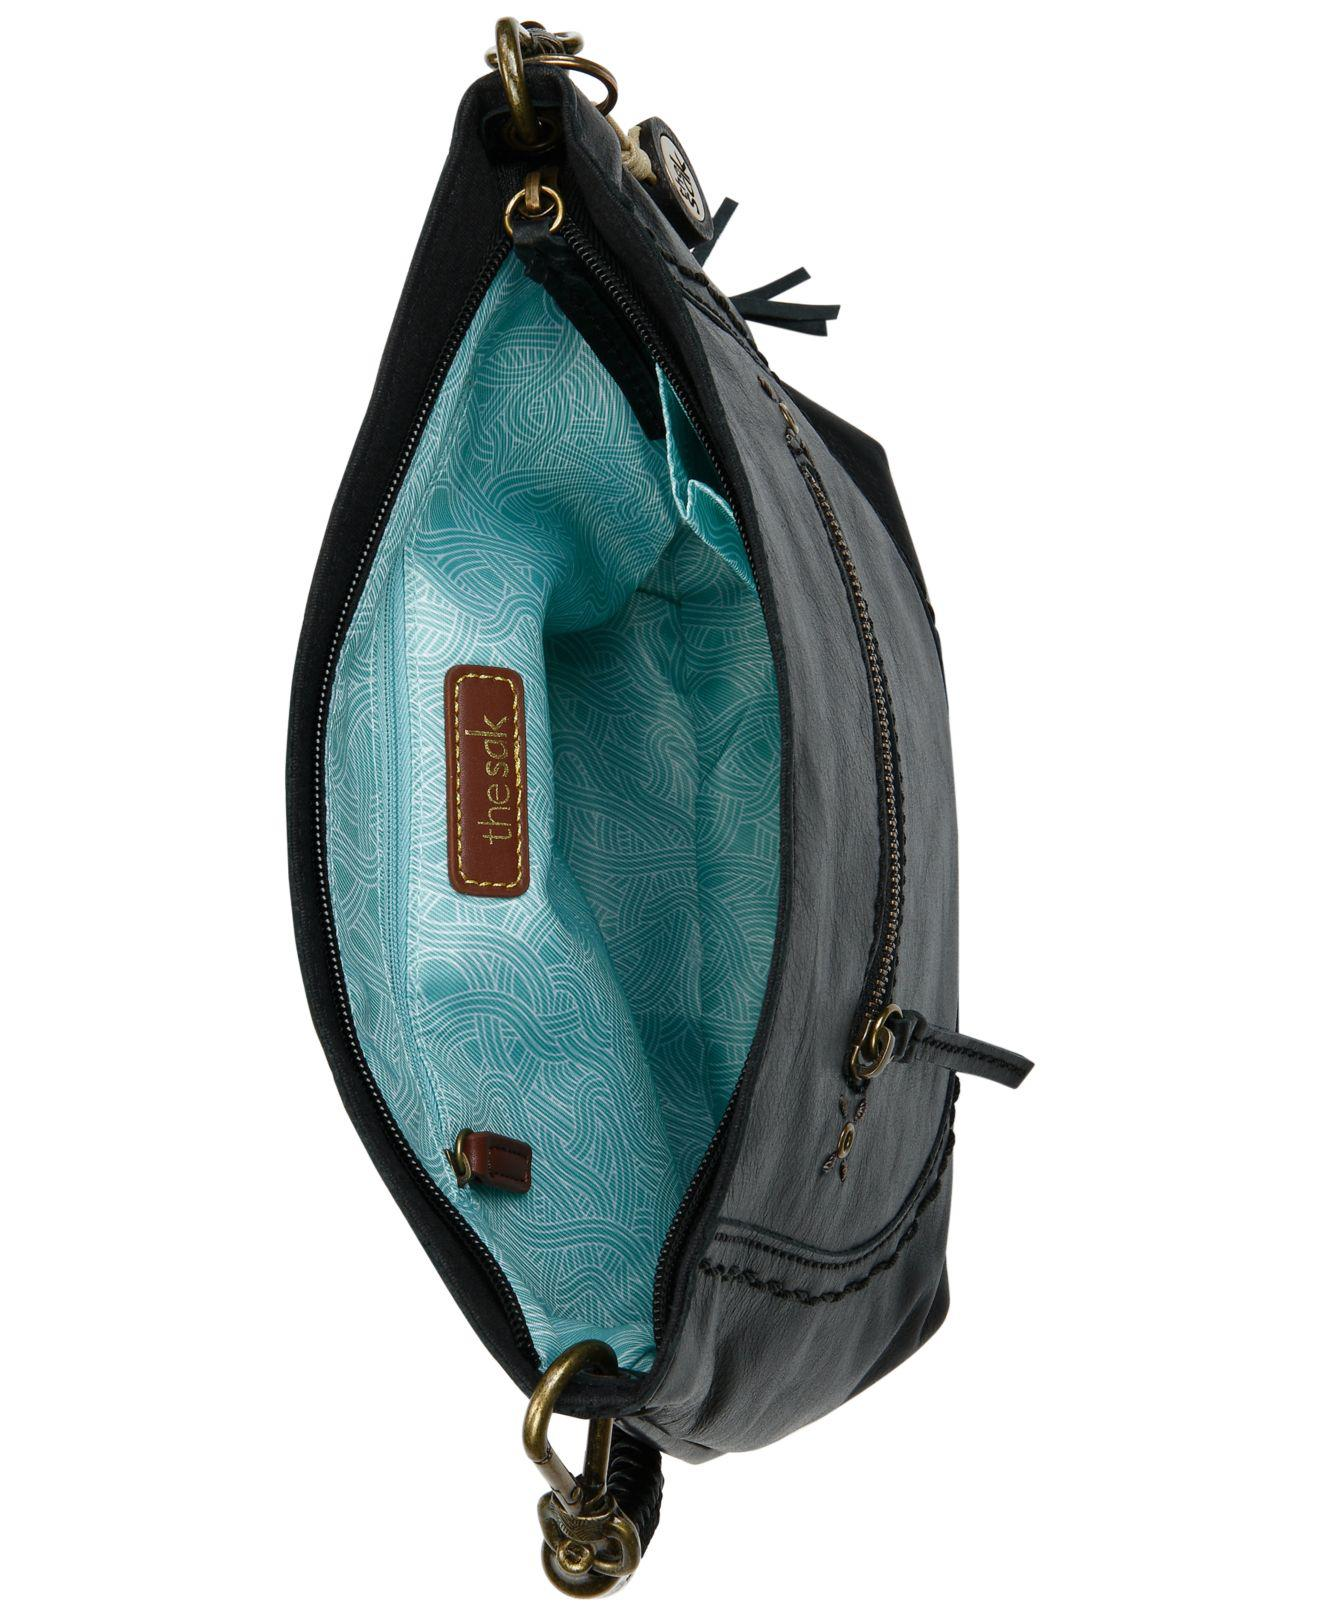 3247f51433 Lyst - The Sak Sequoia Leather Hobo in Black - Save 30%